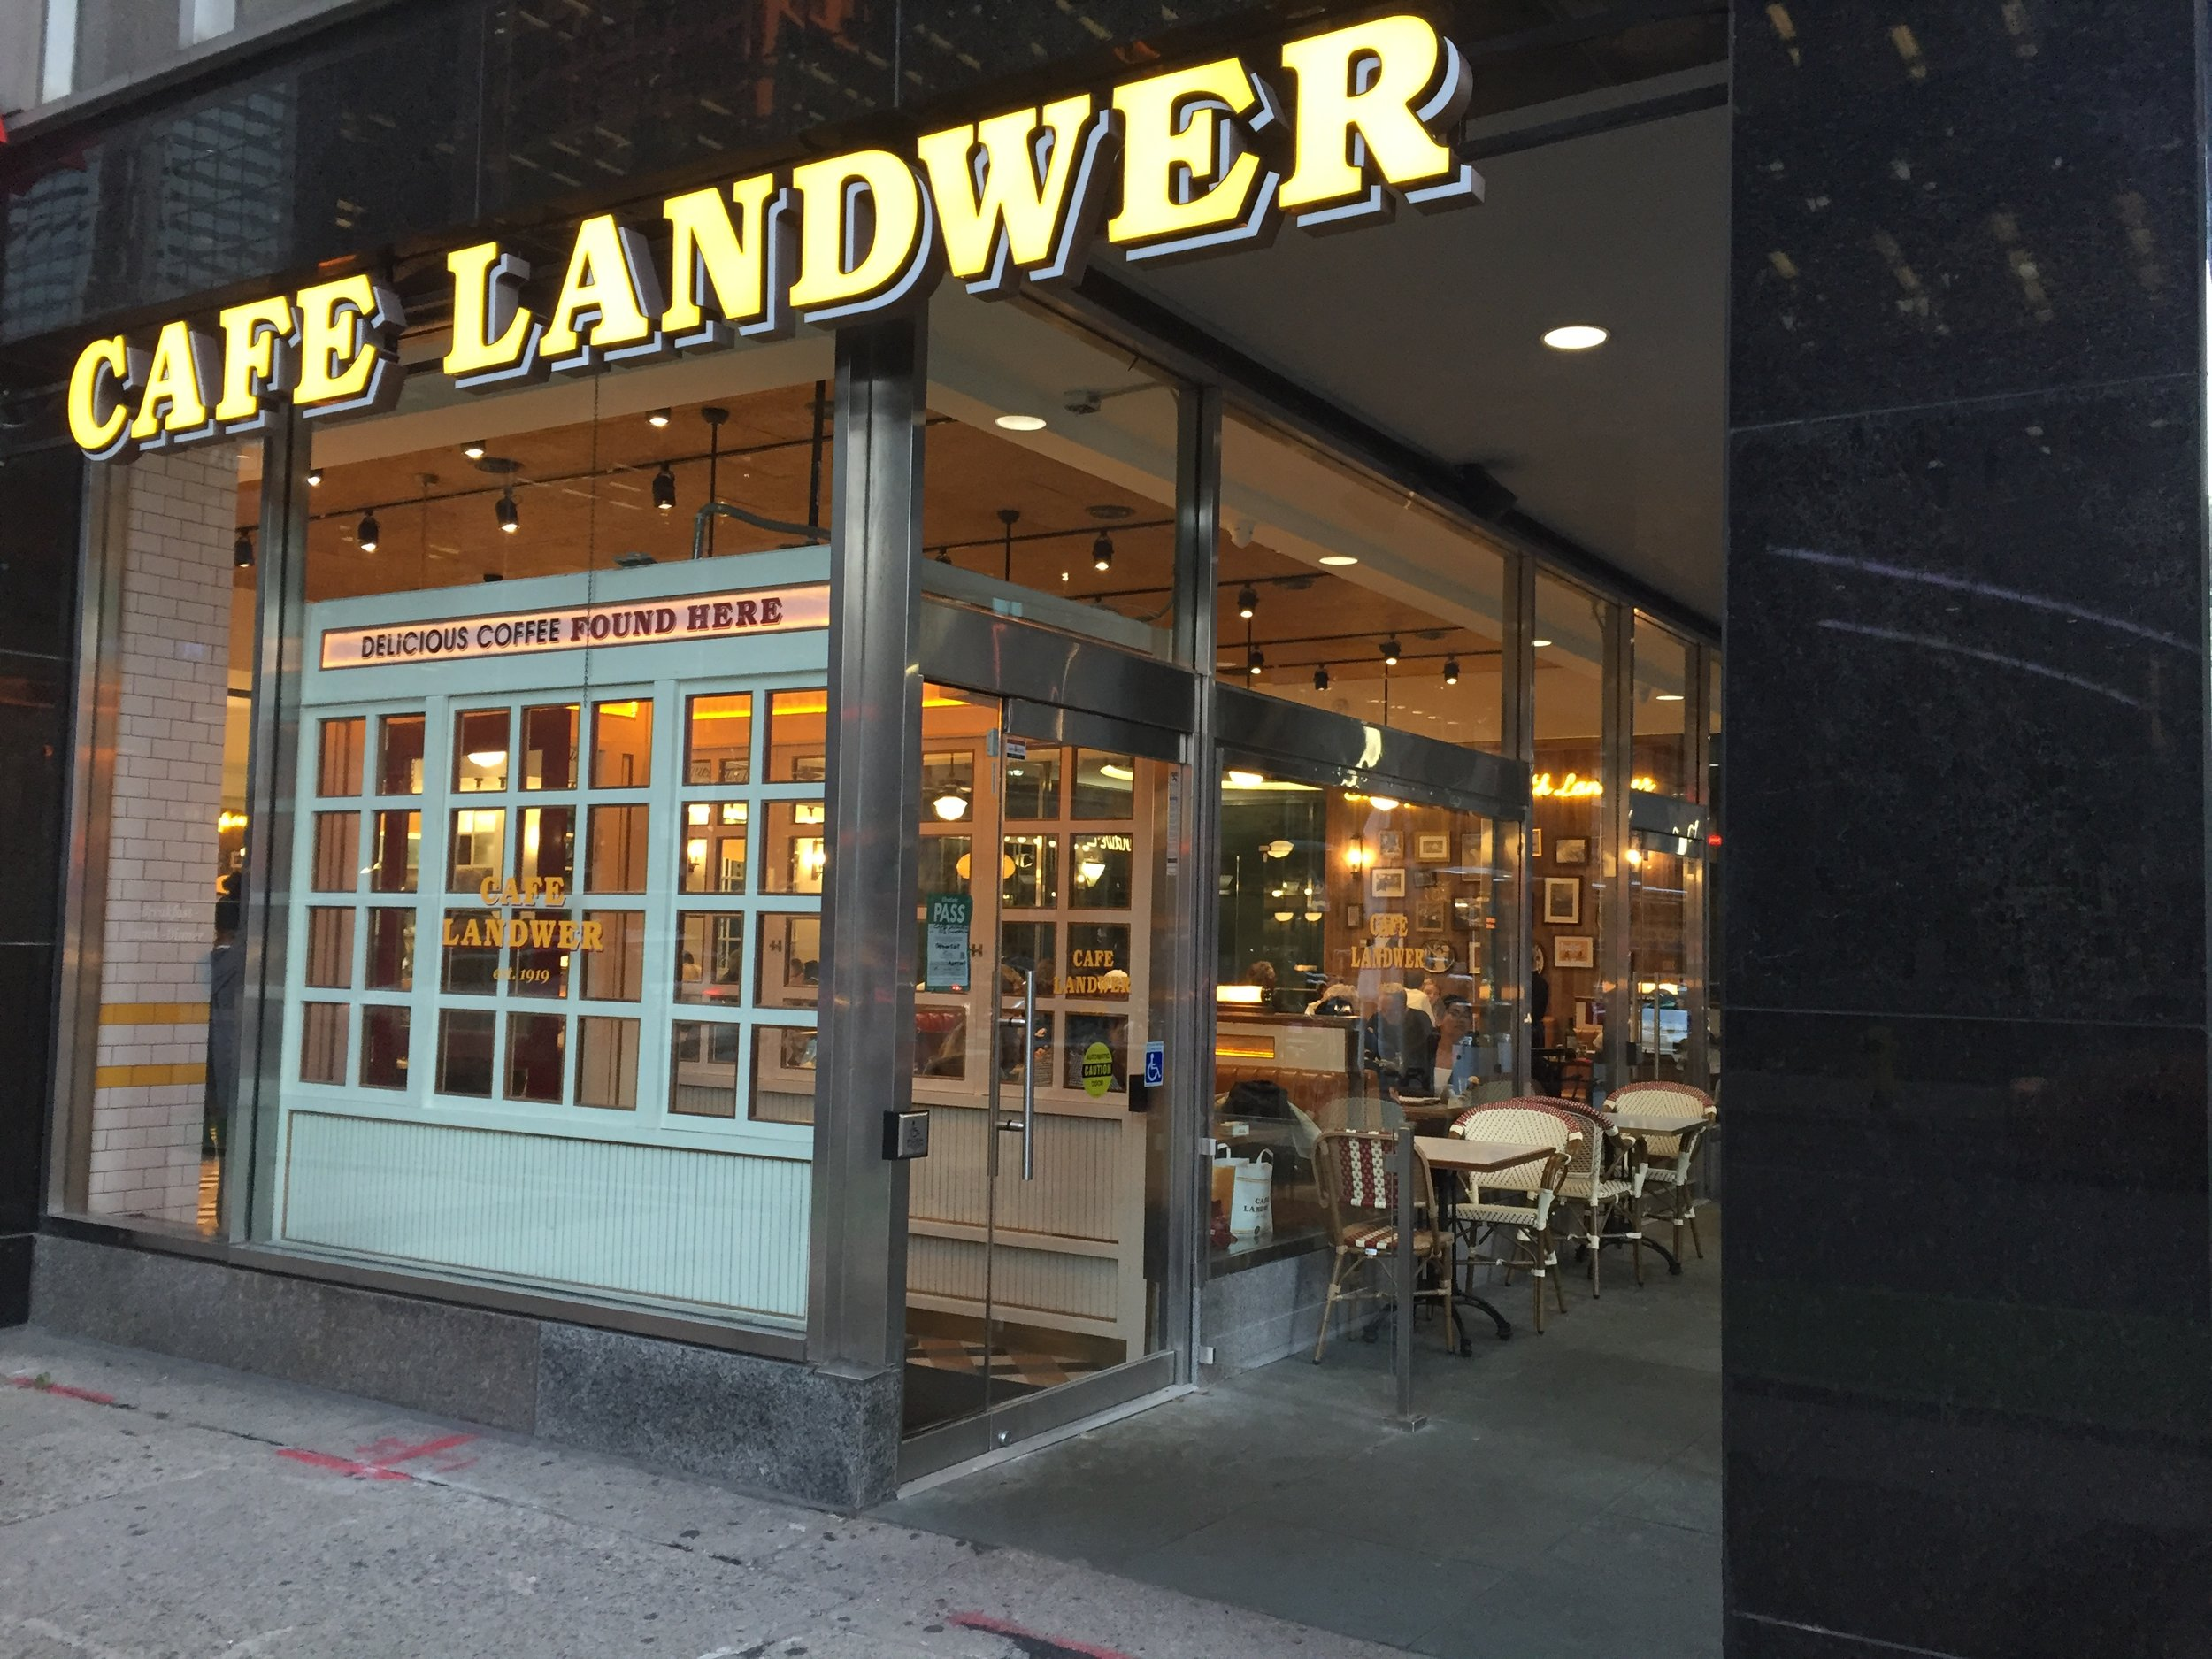 Picture of Cafe Landwer's entrance